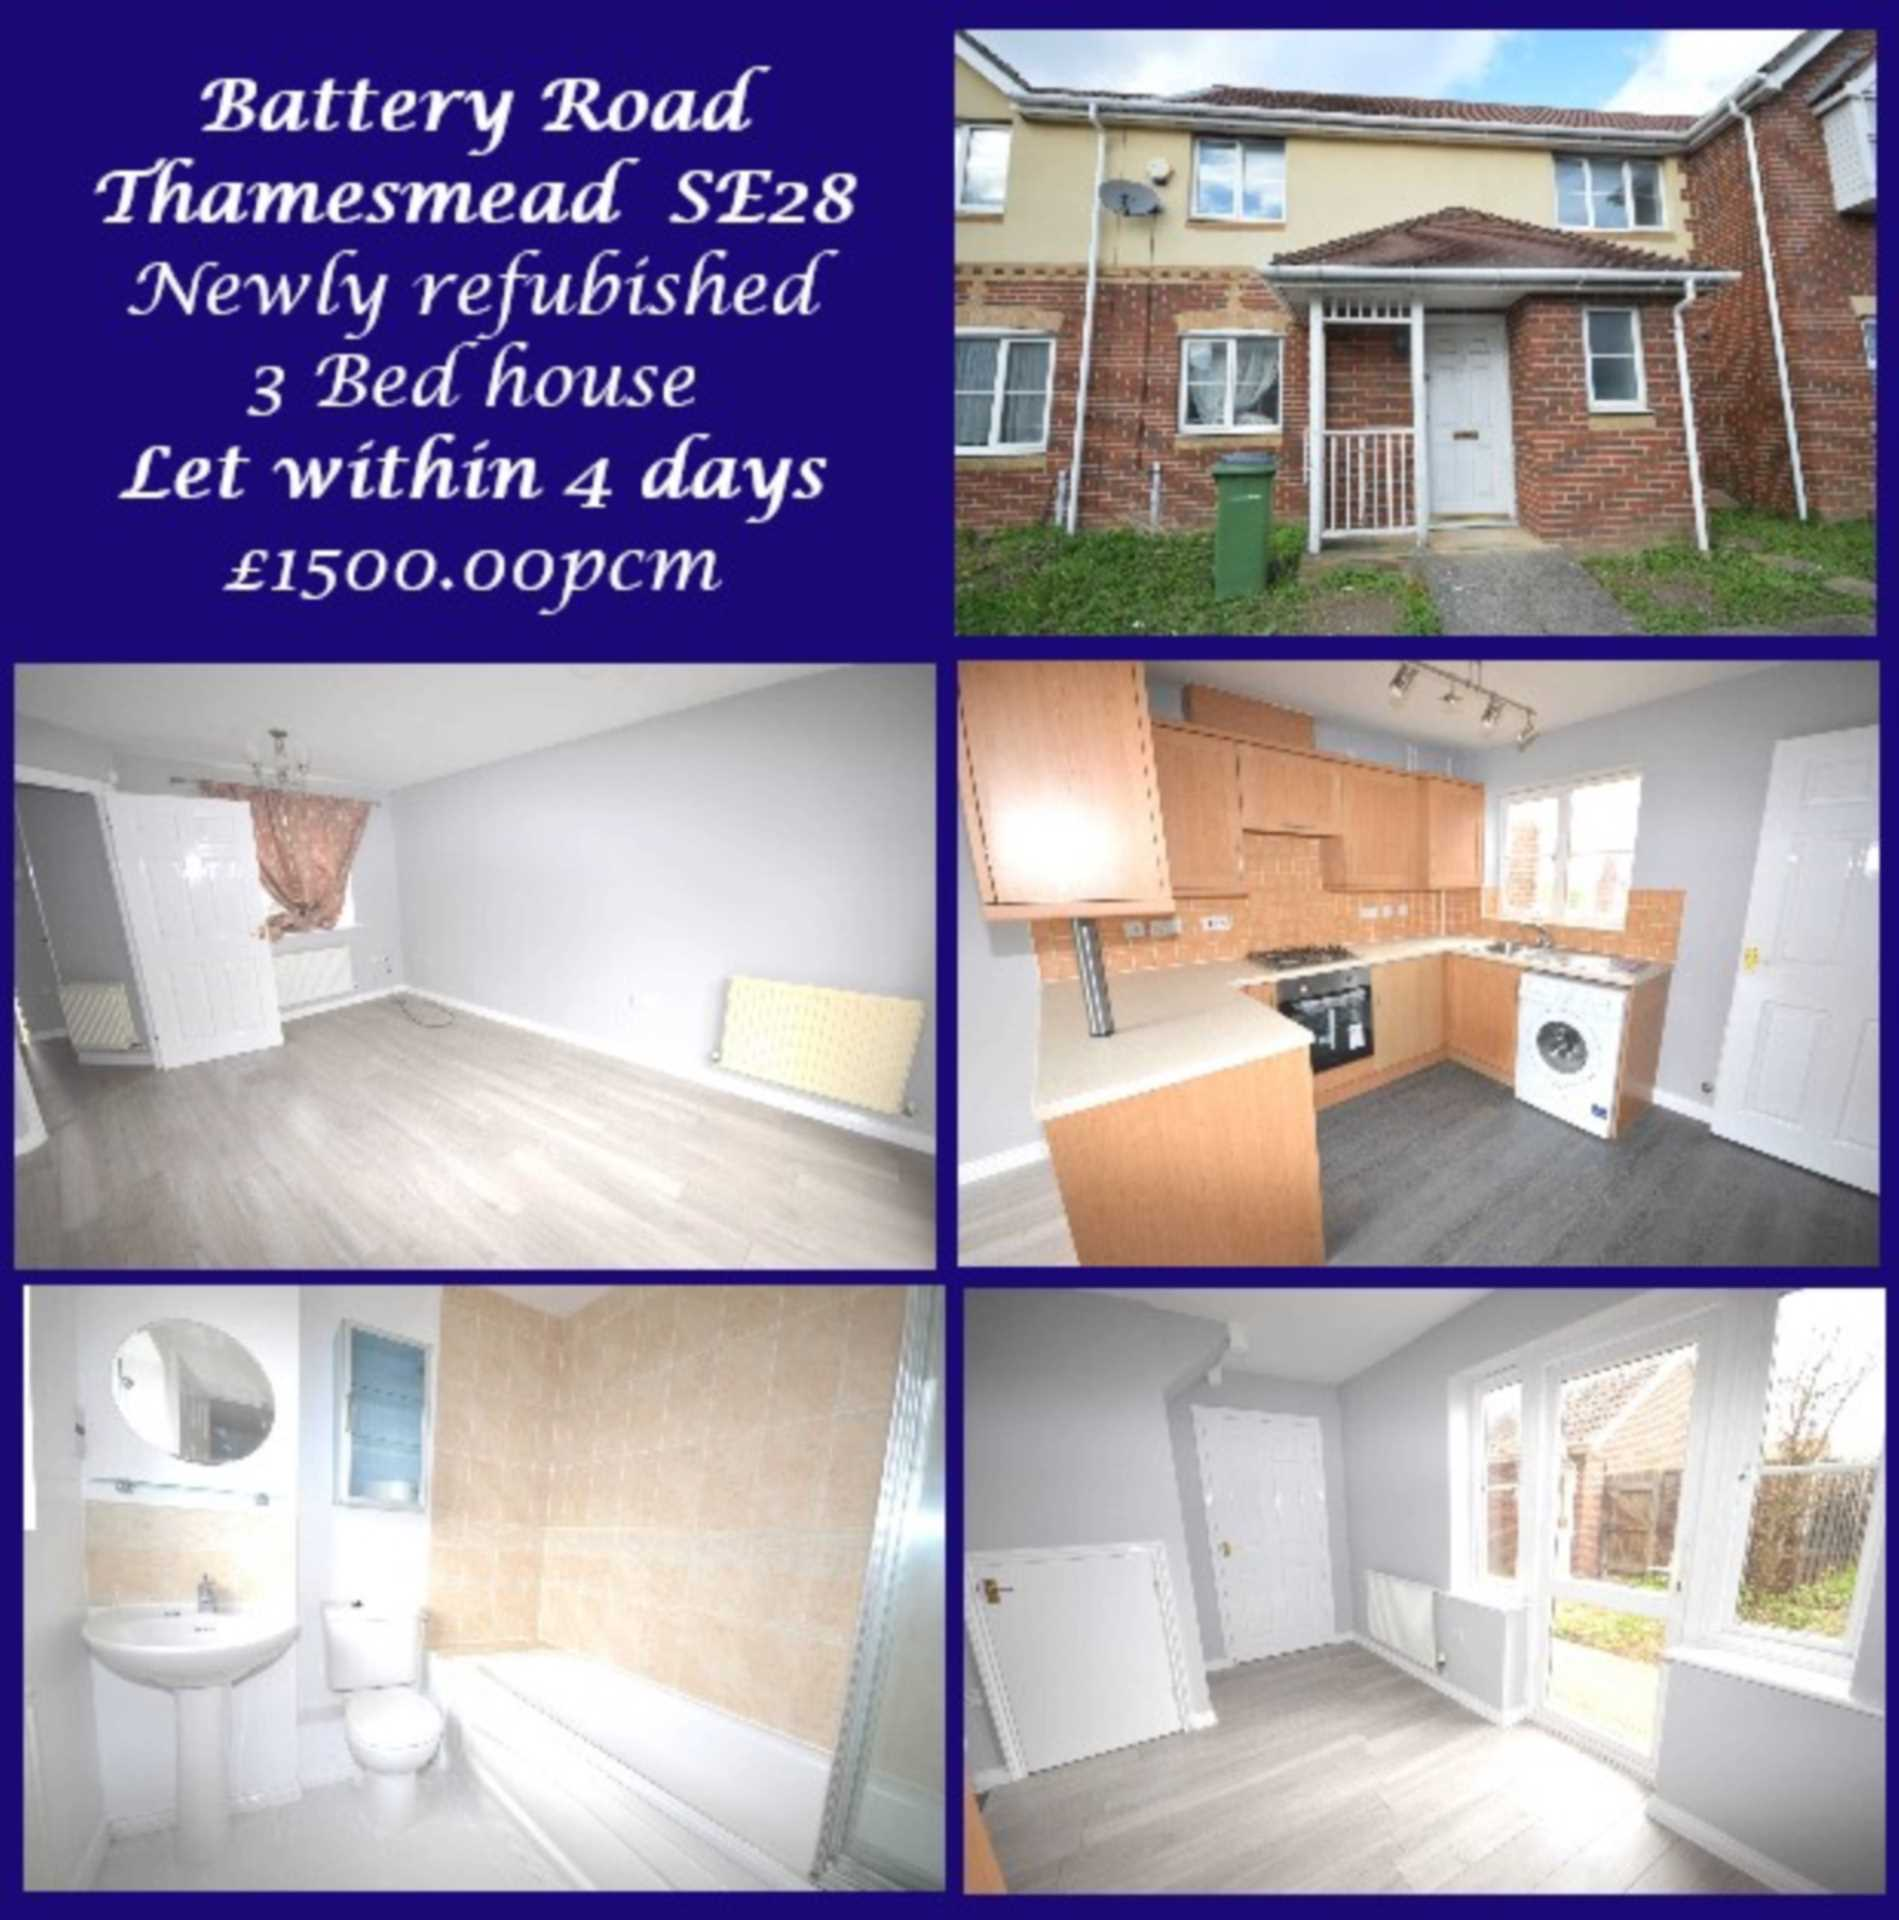 LET WITHIN 4 DAYS! Battery Road, West Thamesmead, SE28